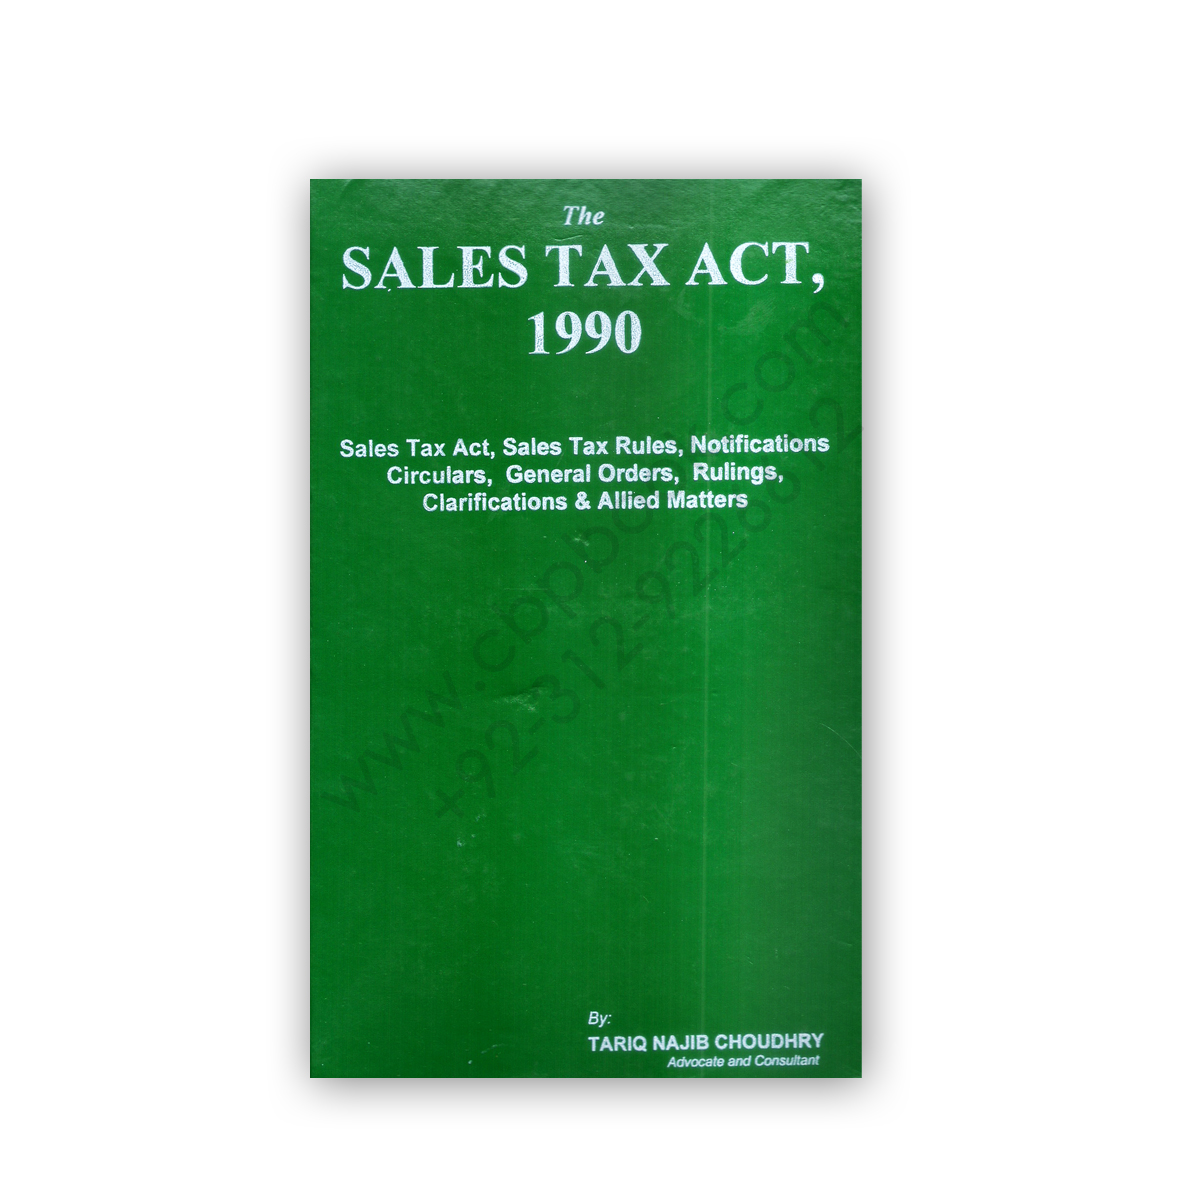 sales tax act 1990 amended up to august 2017 by tariq najib chaudhry